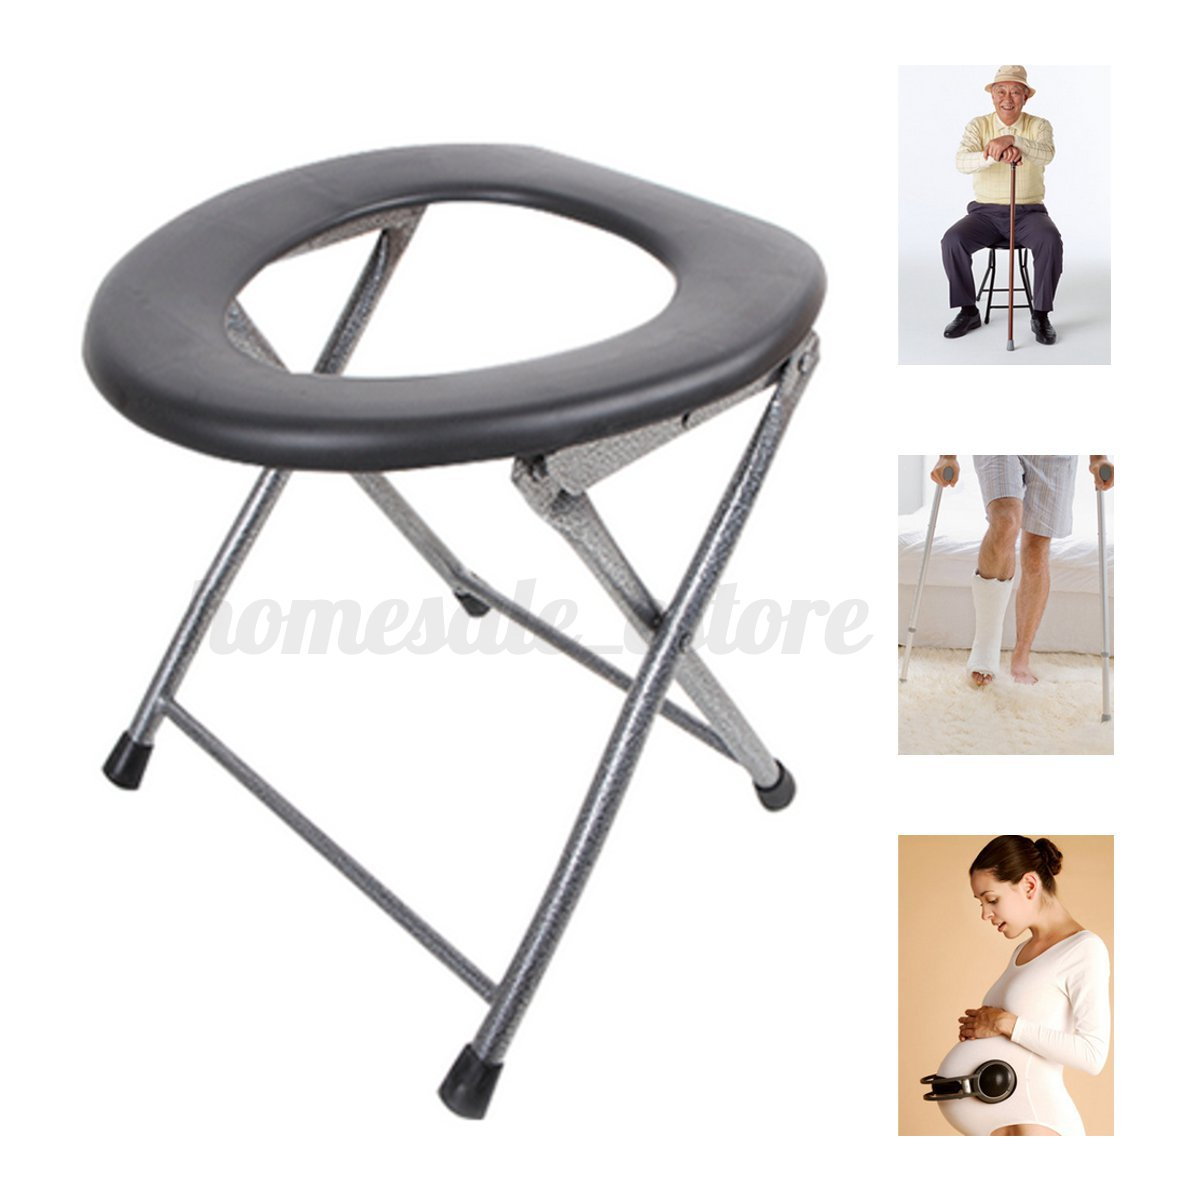 fishing chair tent french bergere dining chairs portable folding toilet rv travel camping boat